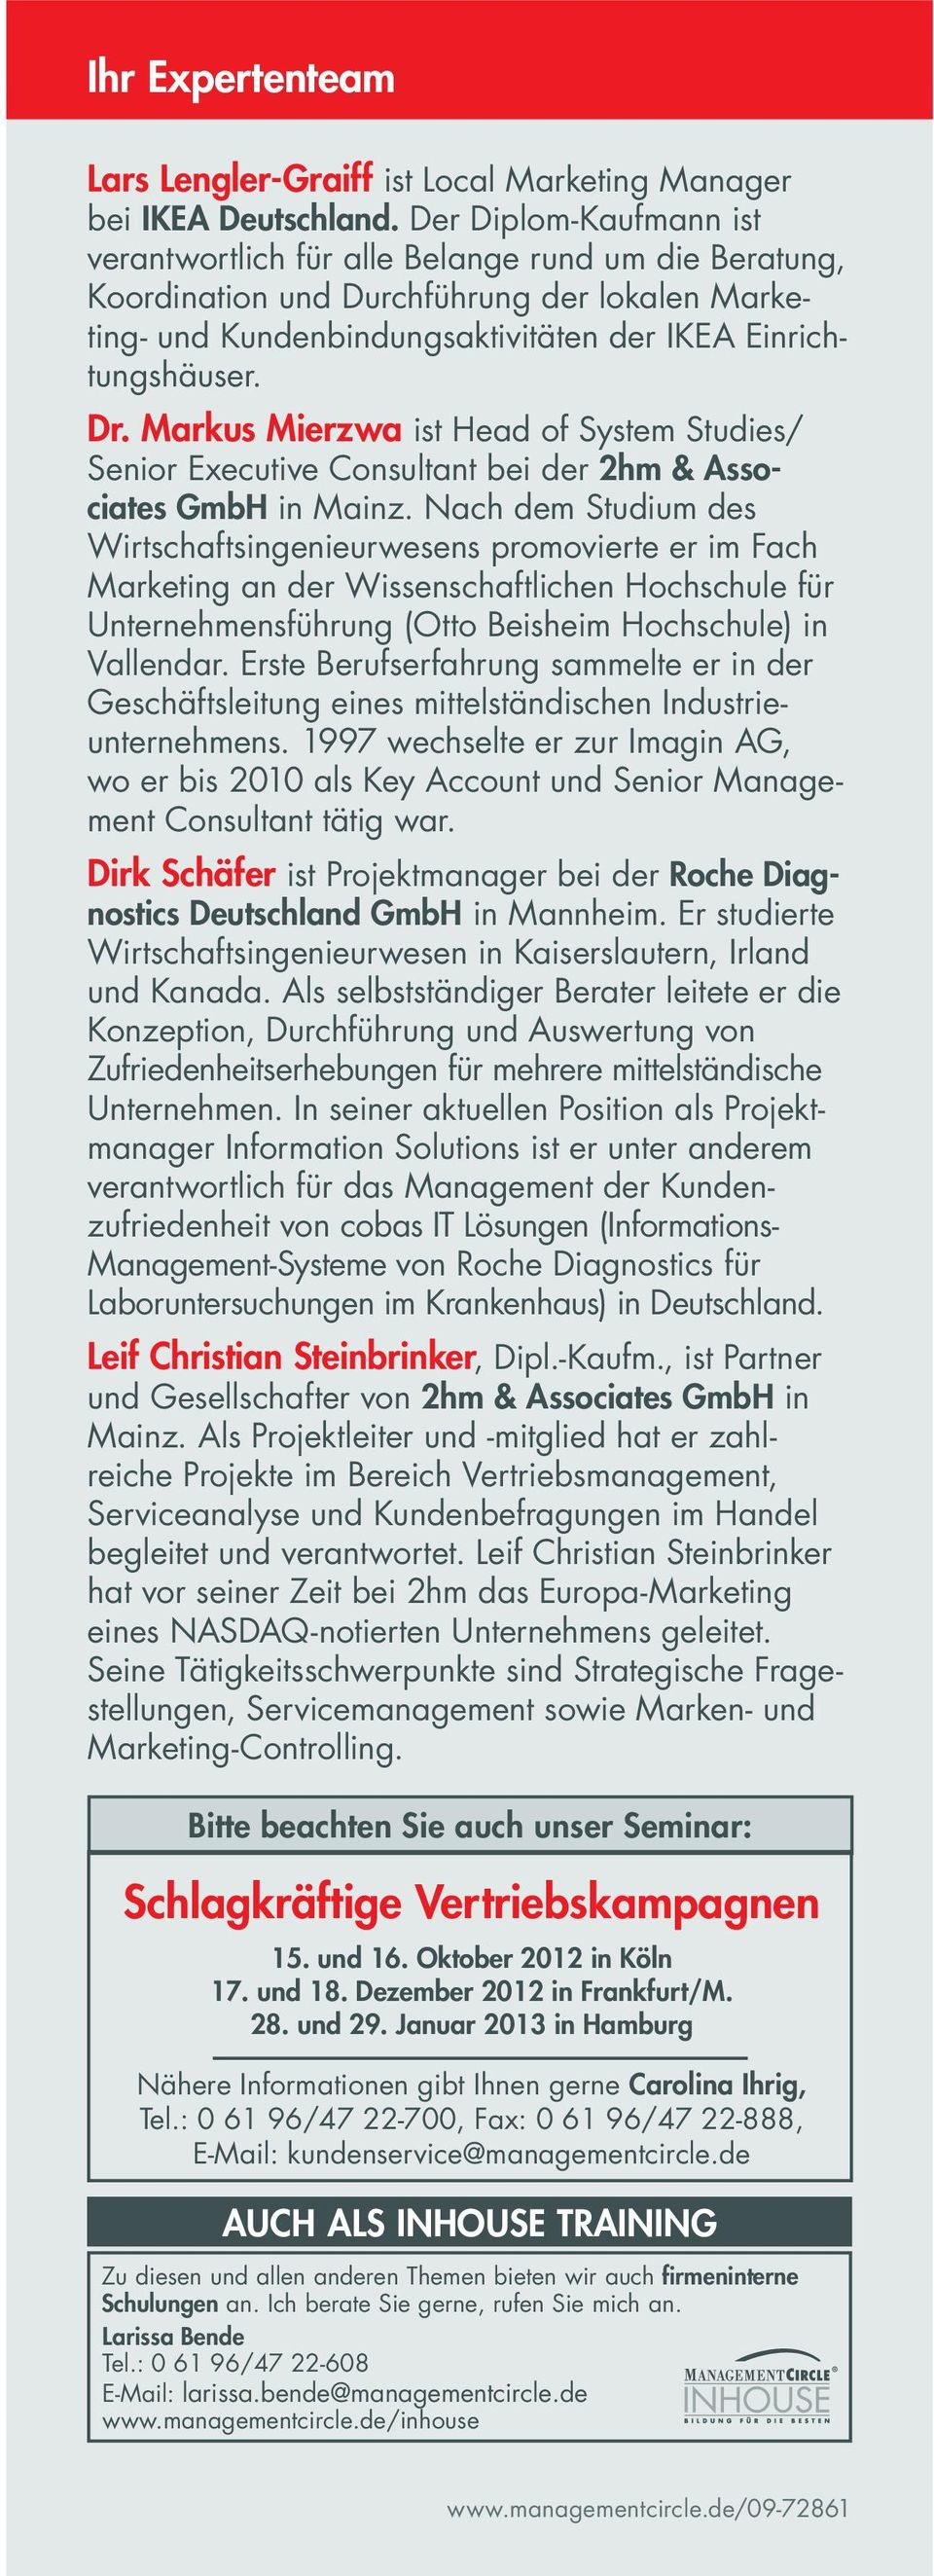 Markus Mierzwa ist Head of System Studies/ Senior Executive Consultant bei der 2hm & Associates GmbH in Mainz.